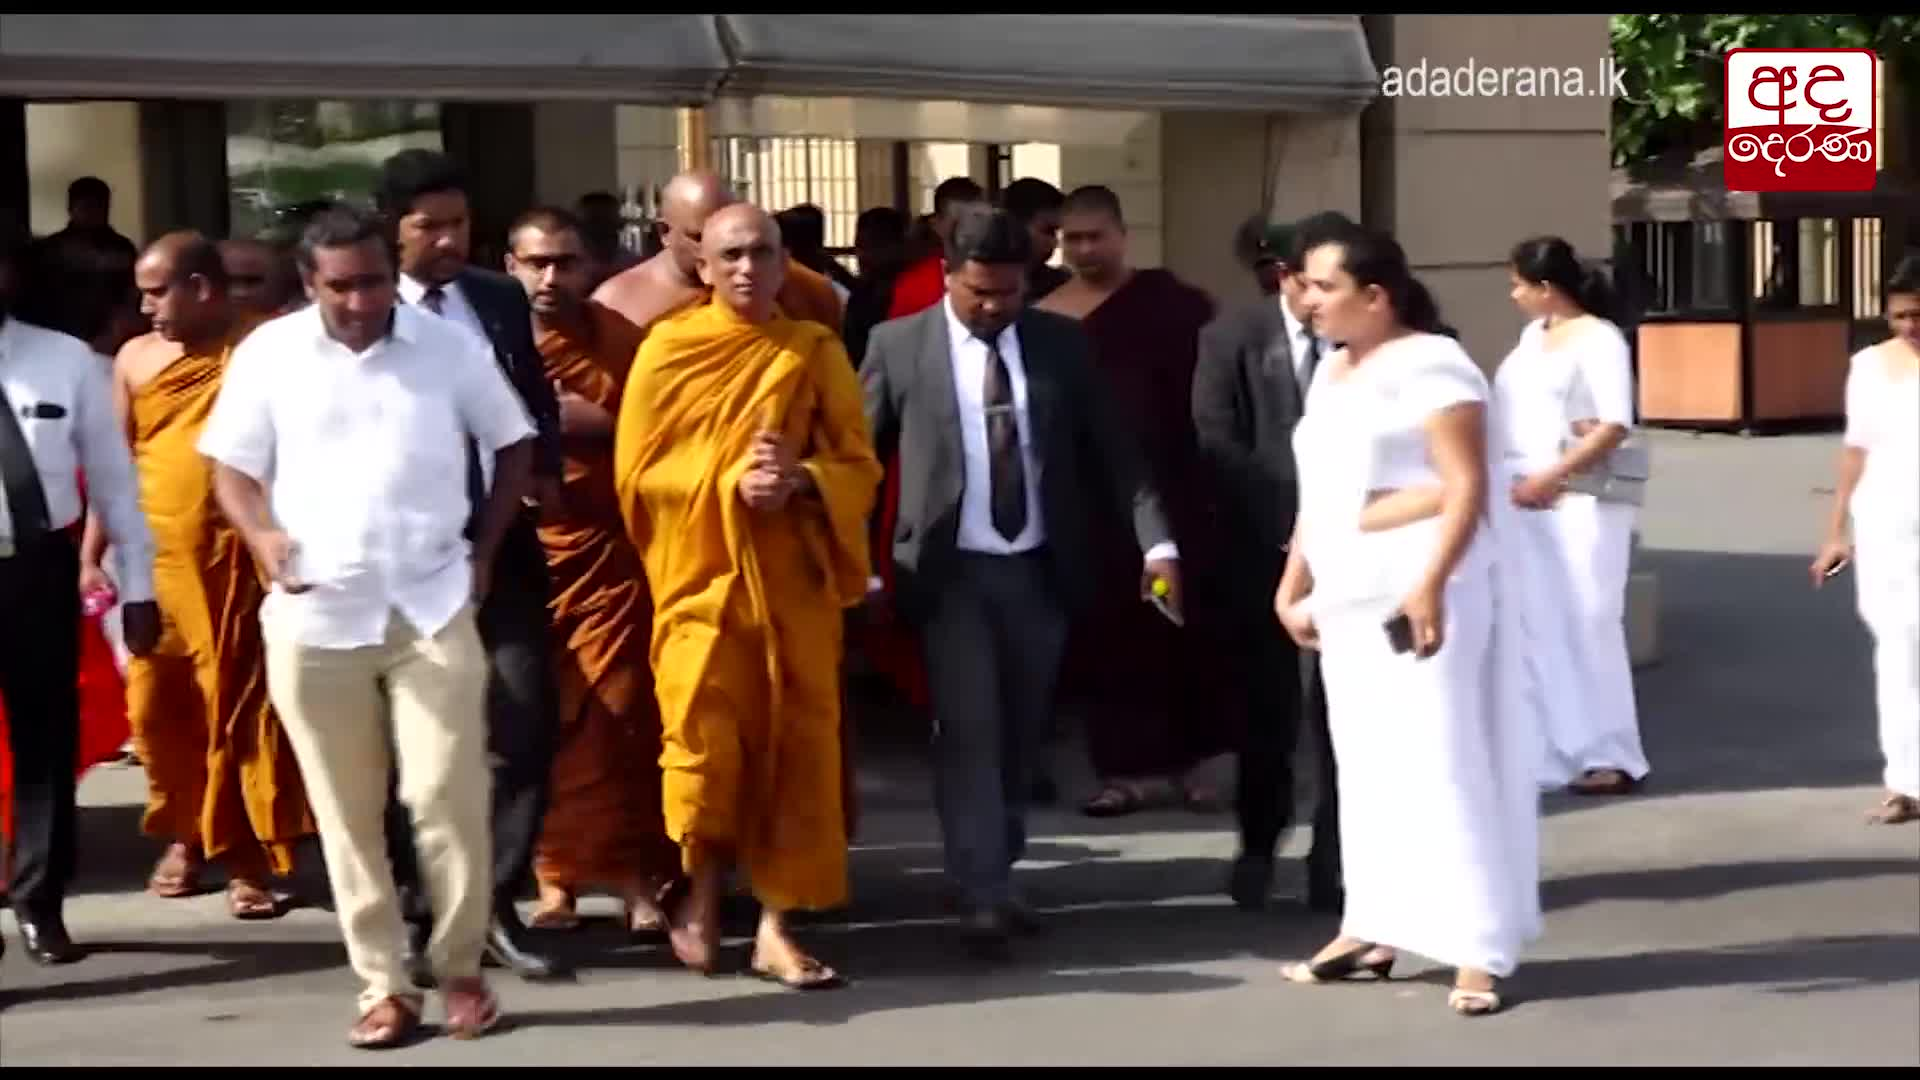 Rathana Thero visiting President obstructed